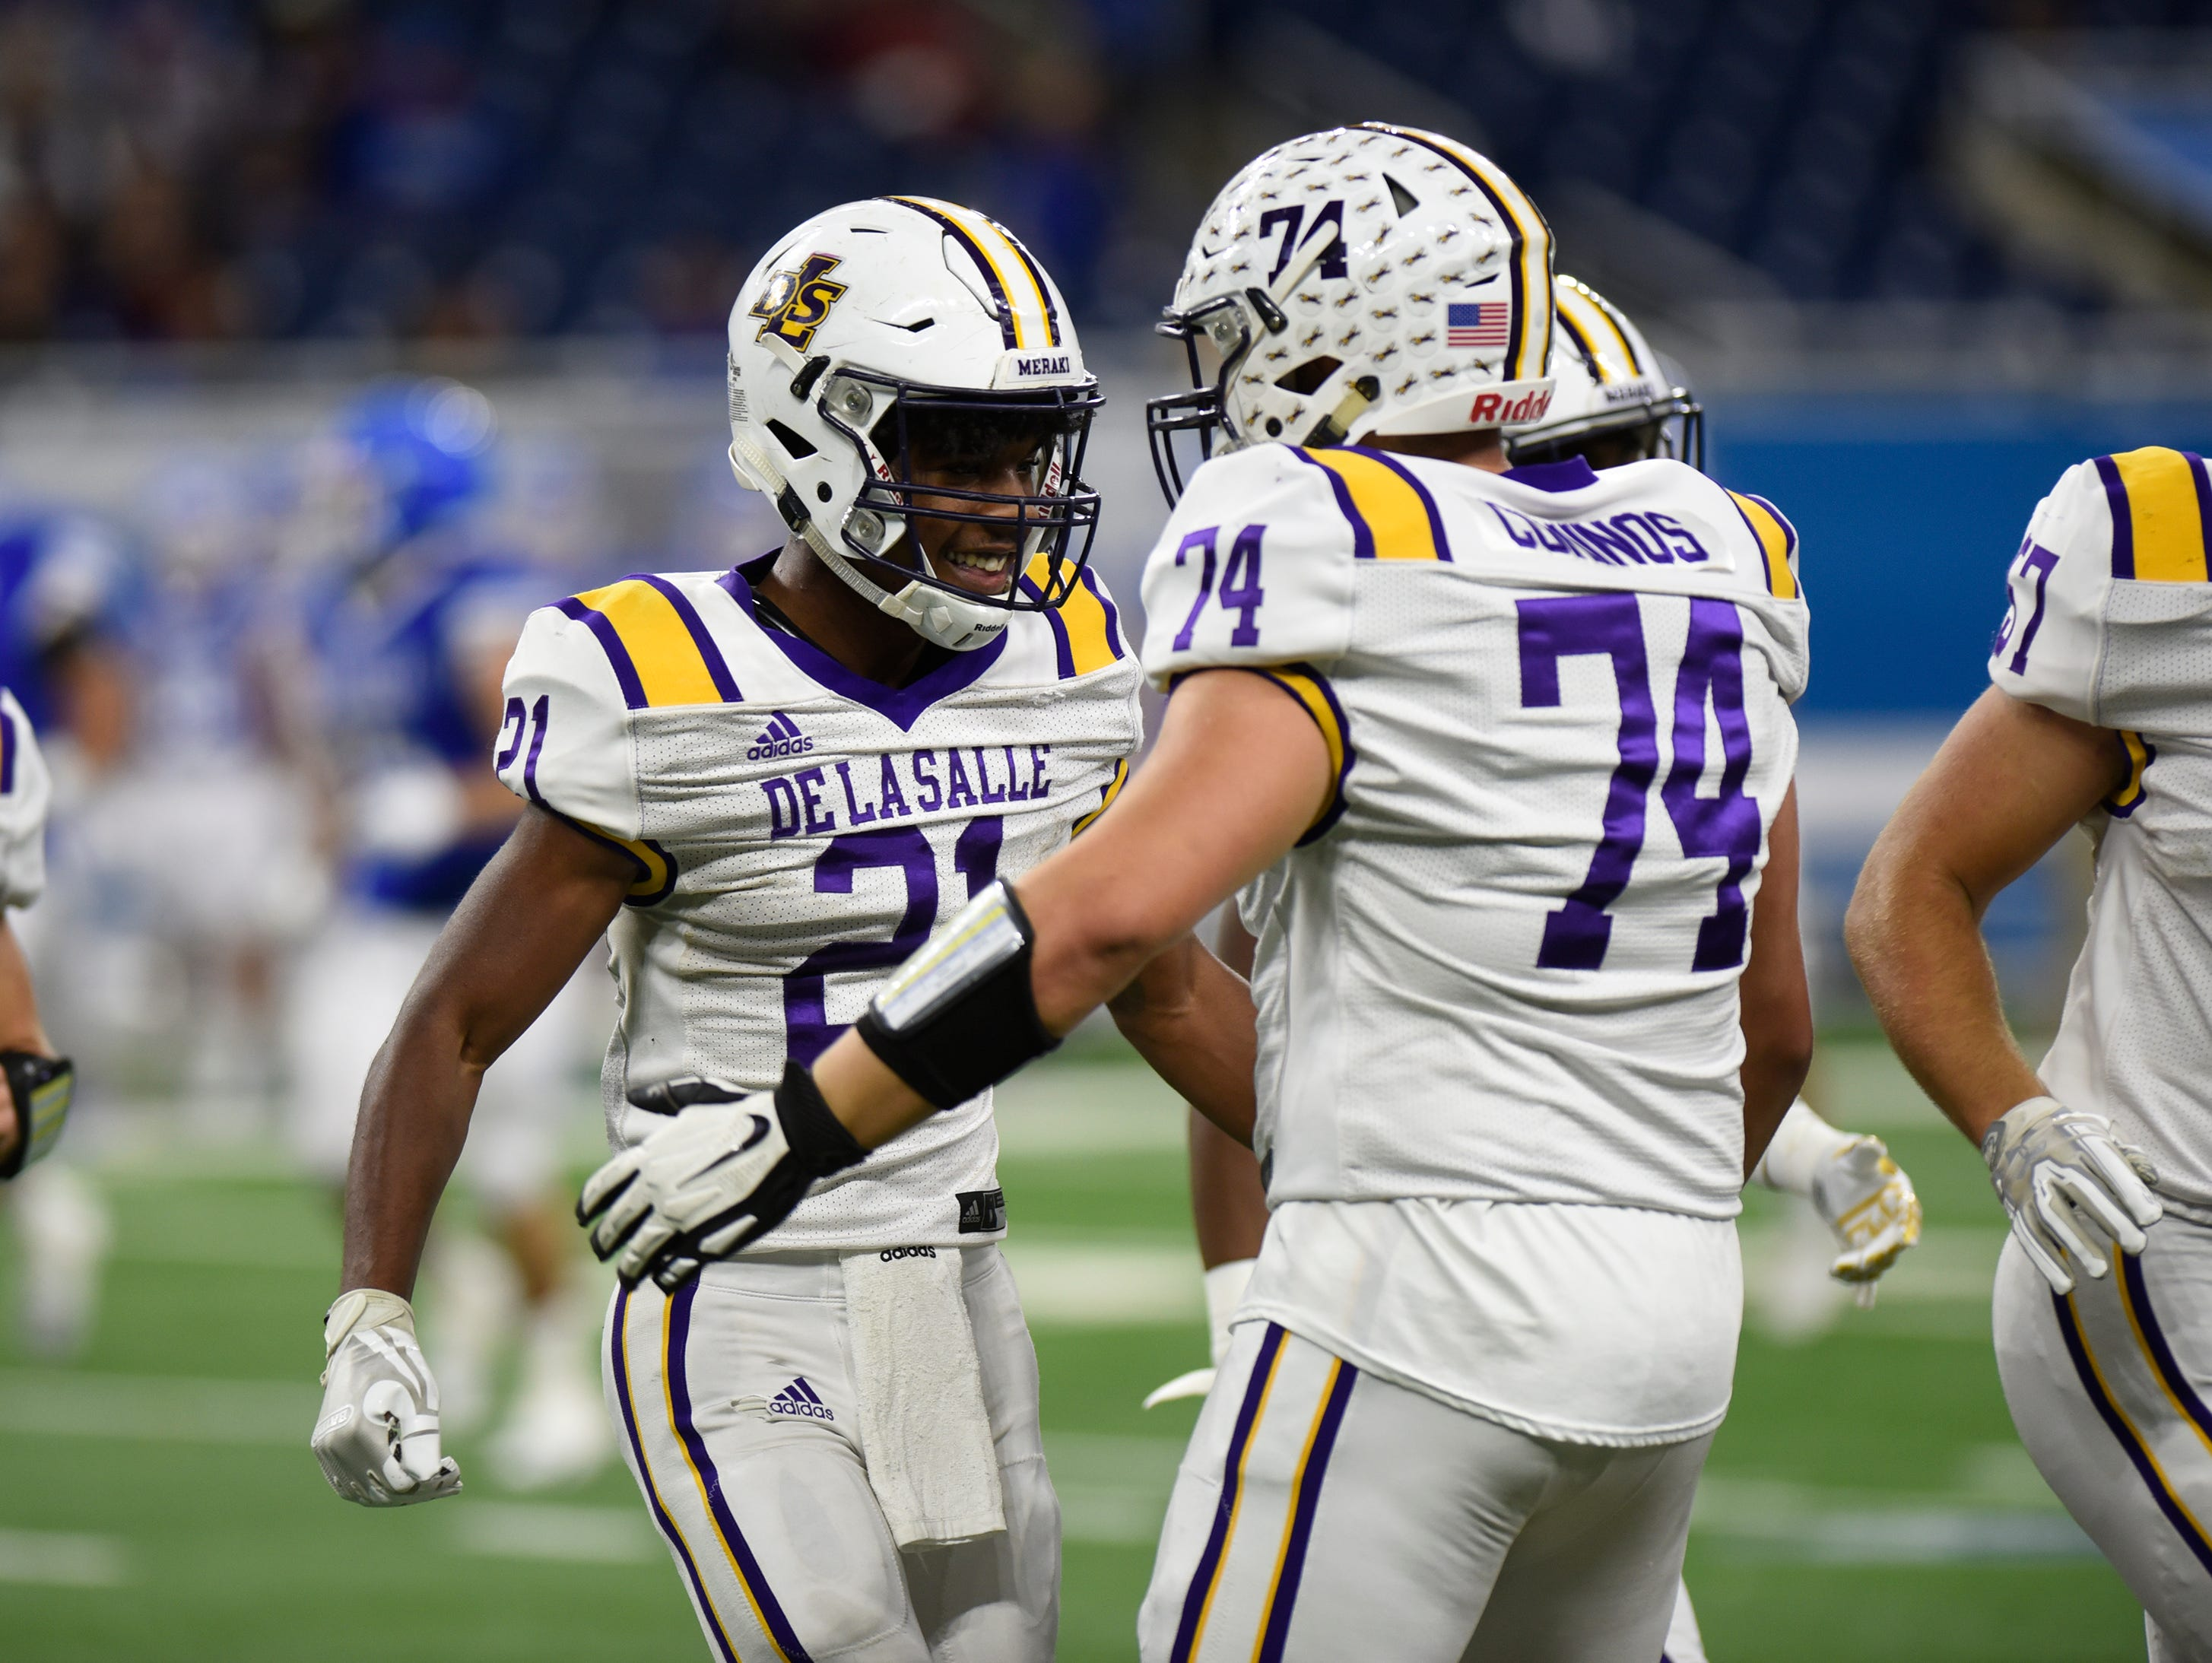 Warren De La Salle's Joshua DeBerry (21)is congratulated by Warren Christopher Cominos (74) after he intercepted a pass during Catholic League Prep Bowl AB Division championship game at Ford Field Oct. 20, 2018.